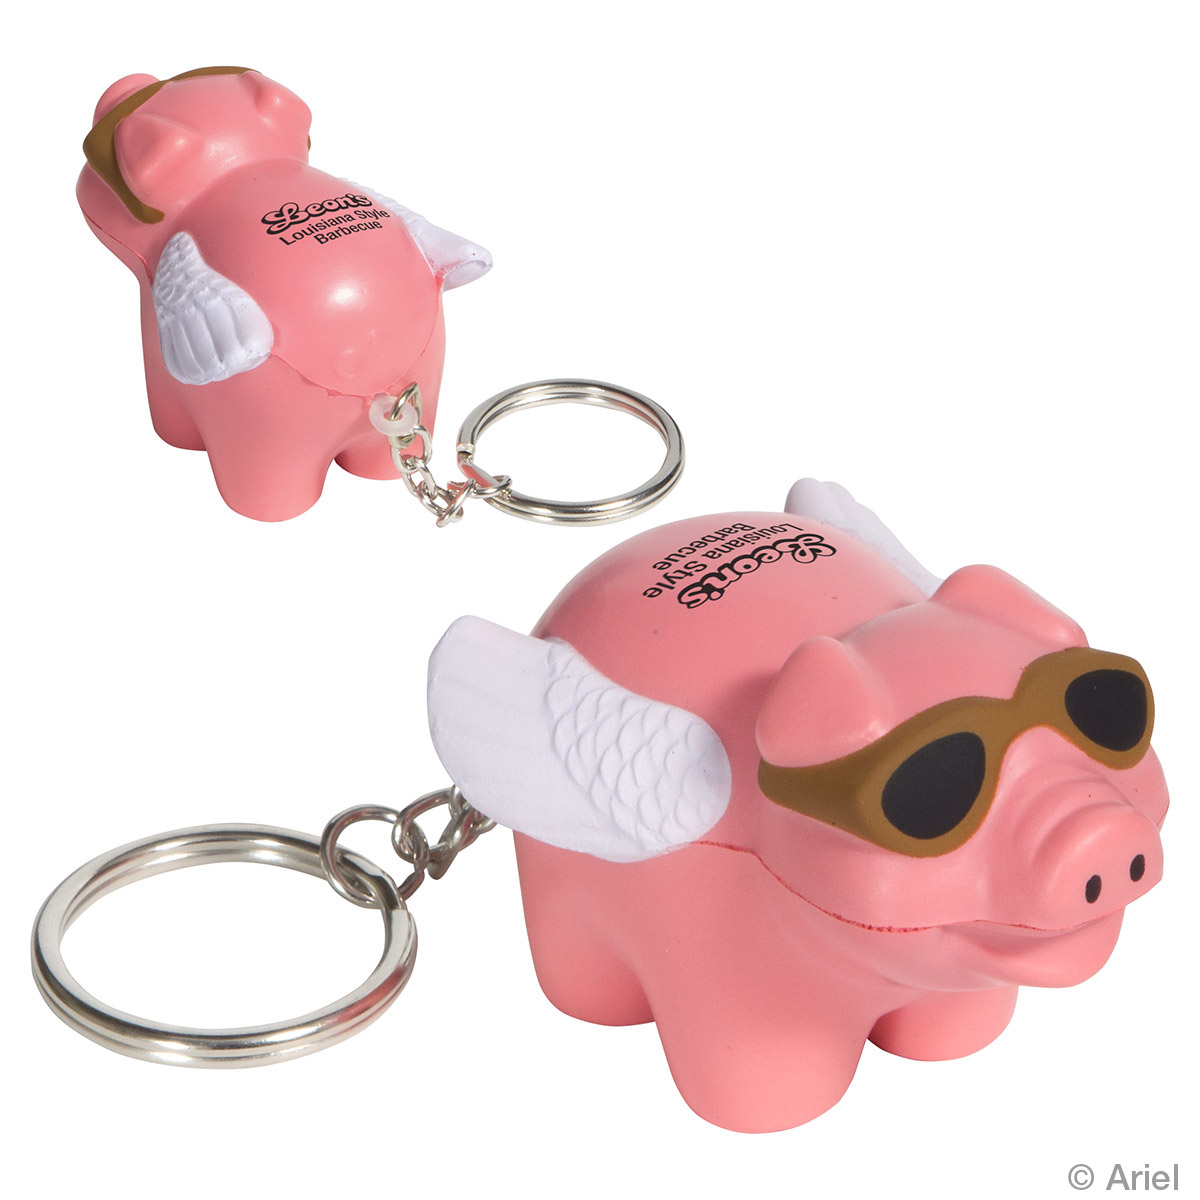 Flying Pig Stress Reliever Key Chain, LKC-FP15, 1 Colour Imprint